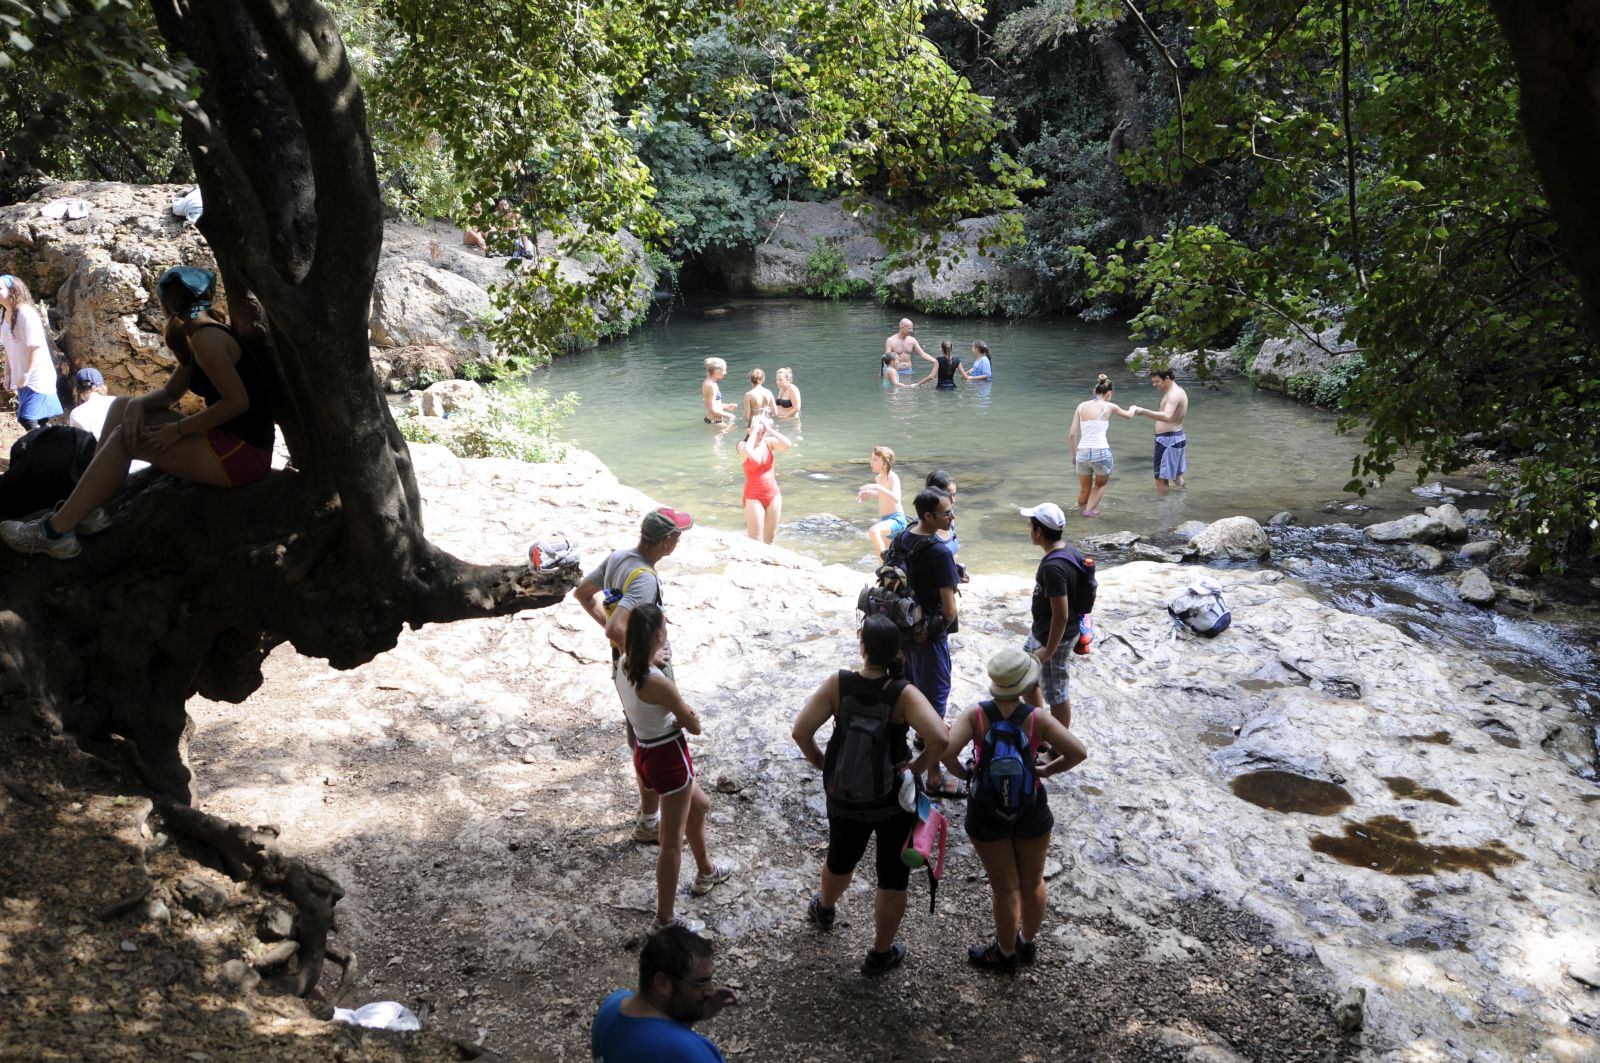 Hikers relax by a spring in the Golan Heights. Photo by Louis Fisher/FLASH90